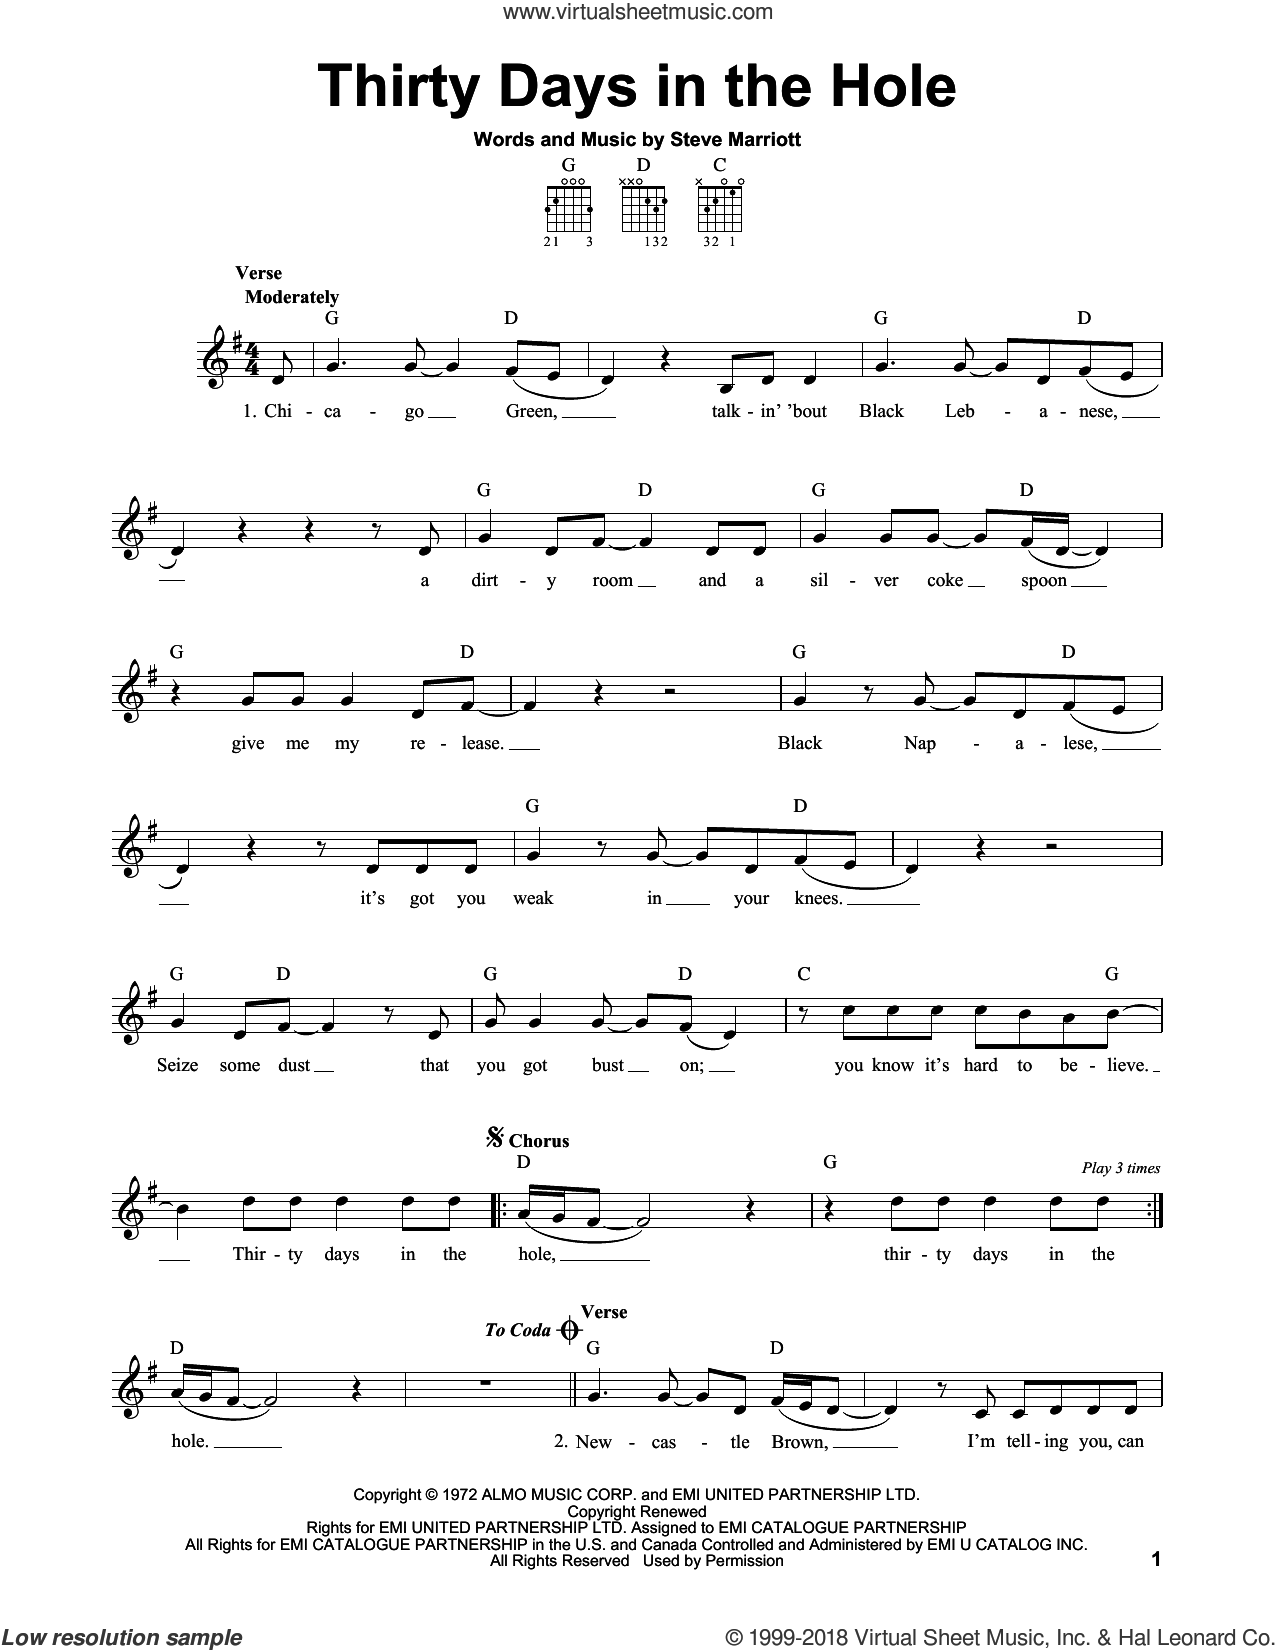 Thirty Days In The Hole sheet music for guitar solo (chords) by Humble Pie and Steve Marriott, easy guitar (chords). Score Image Preview.